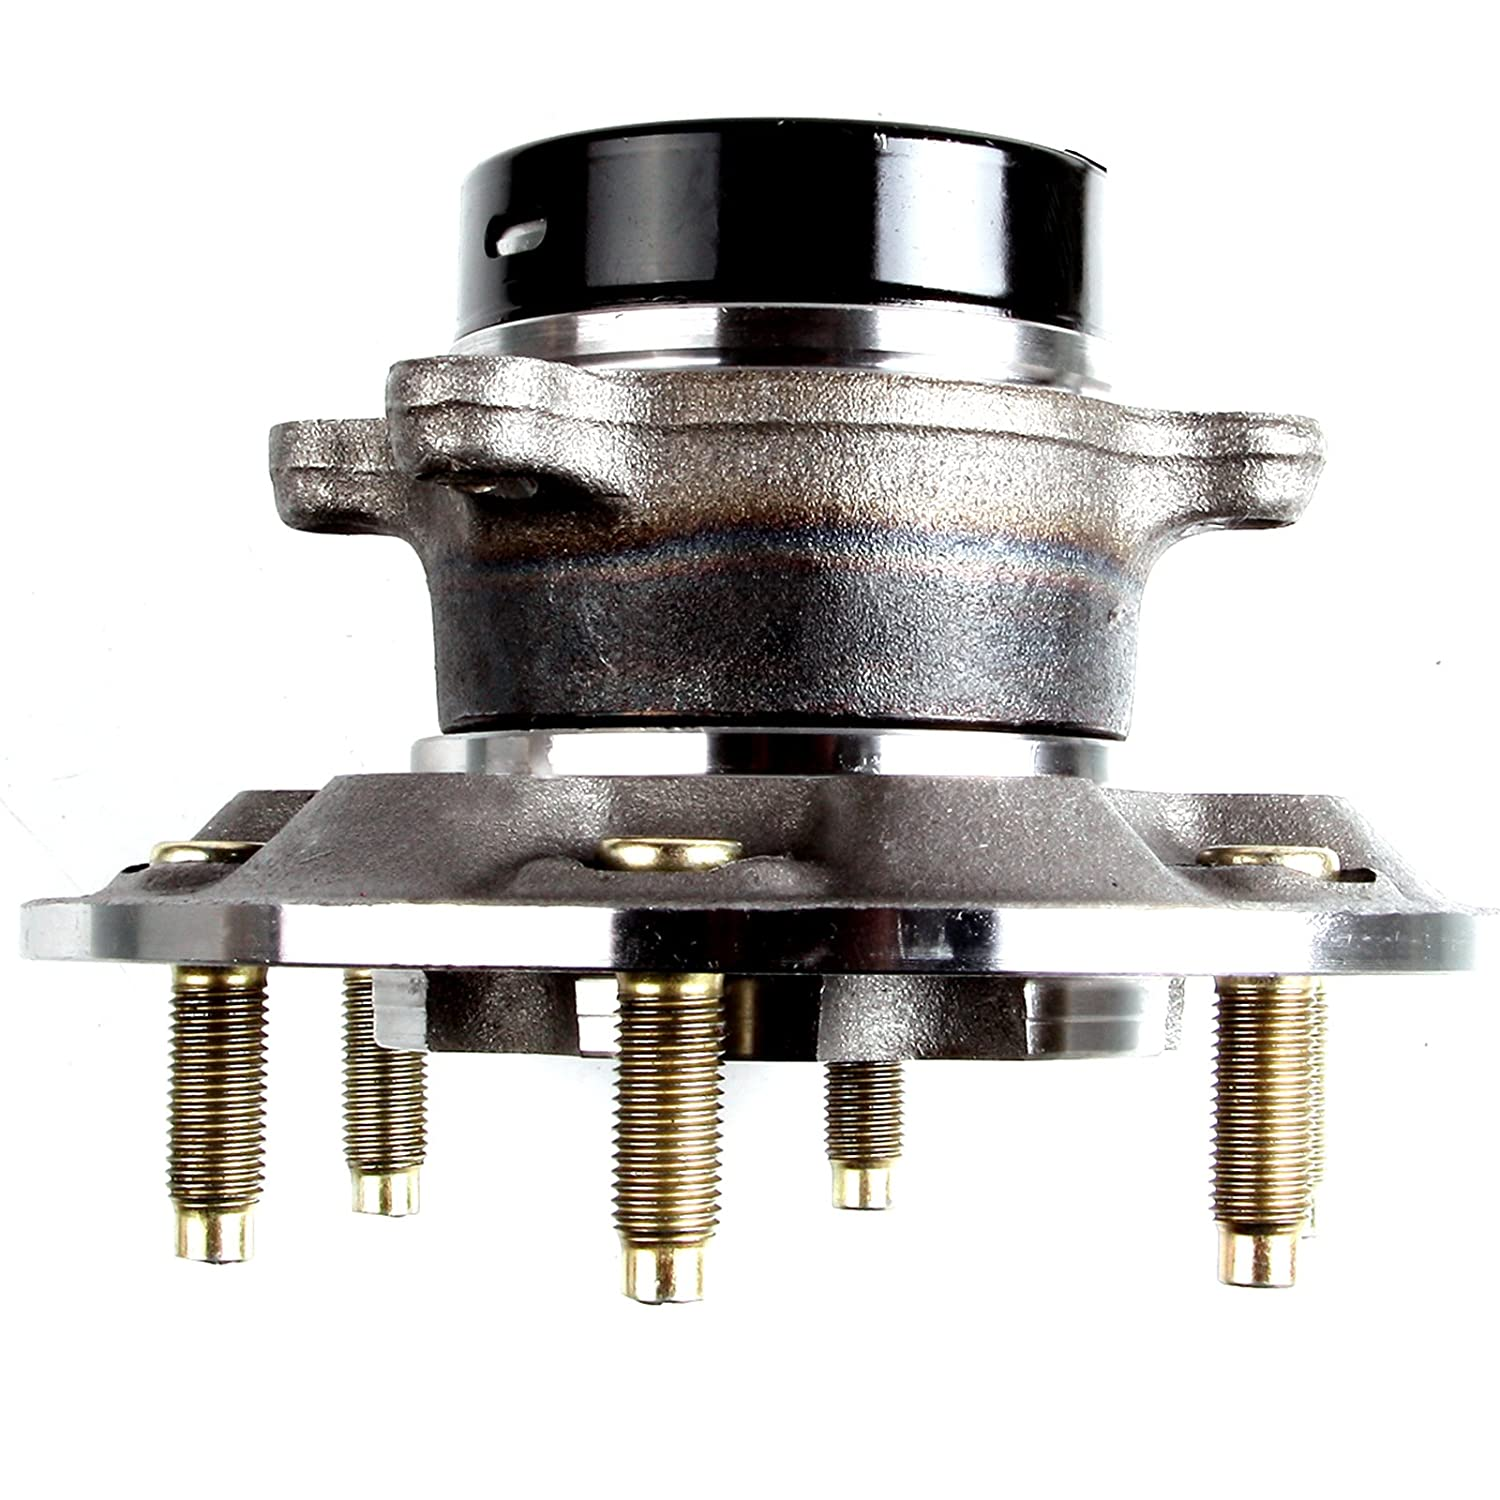 DRIVESTAR 515105 1 Front Right Passenger Side Wheel Hub/&Bearing for Canyon Colorado 2WD 2x4 w//ABS